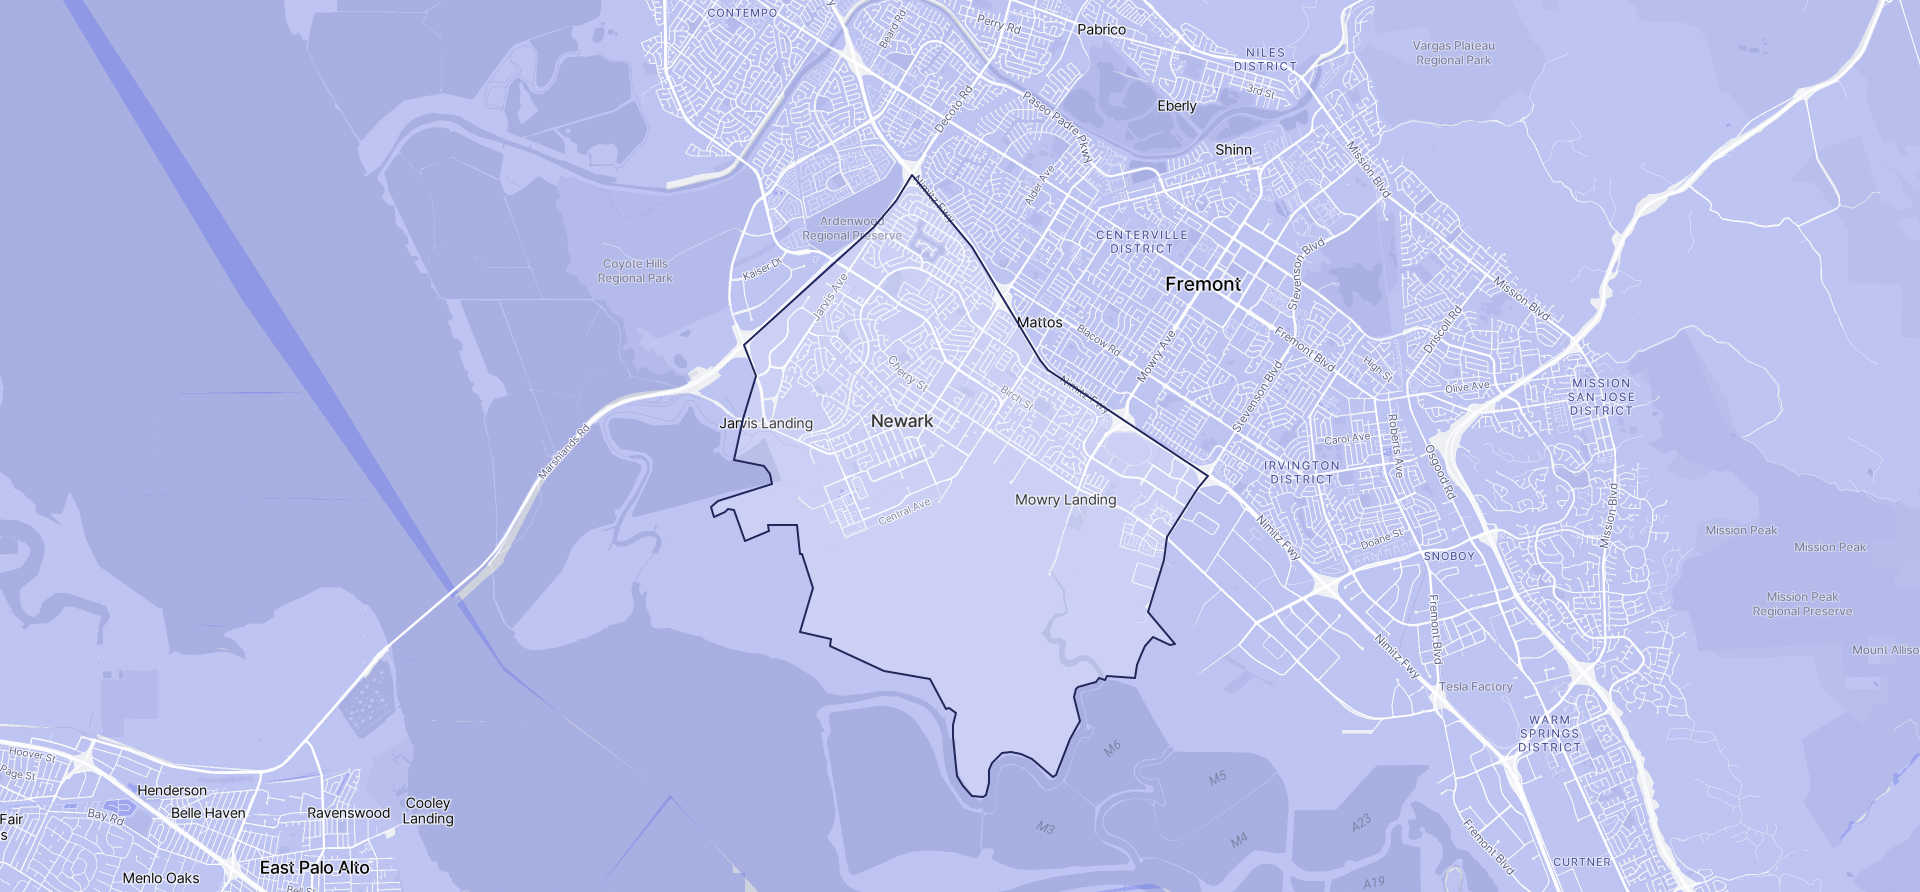 Image of Newark boundaries on a map.